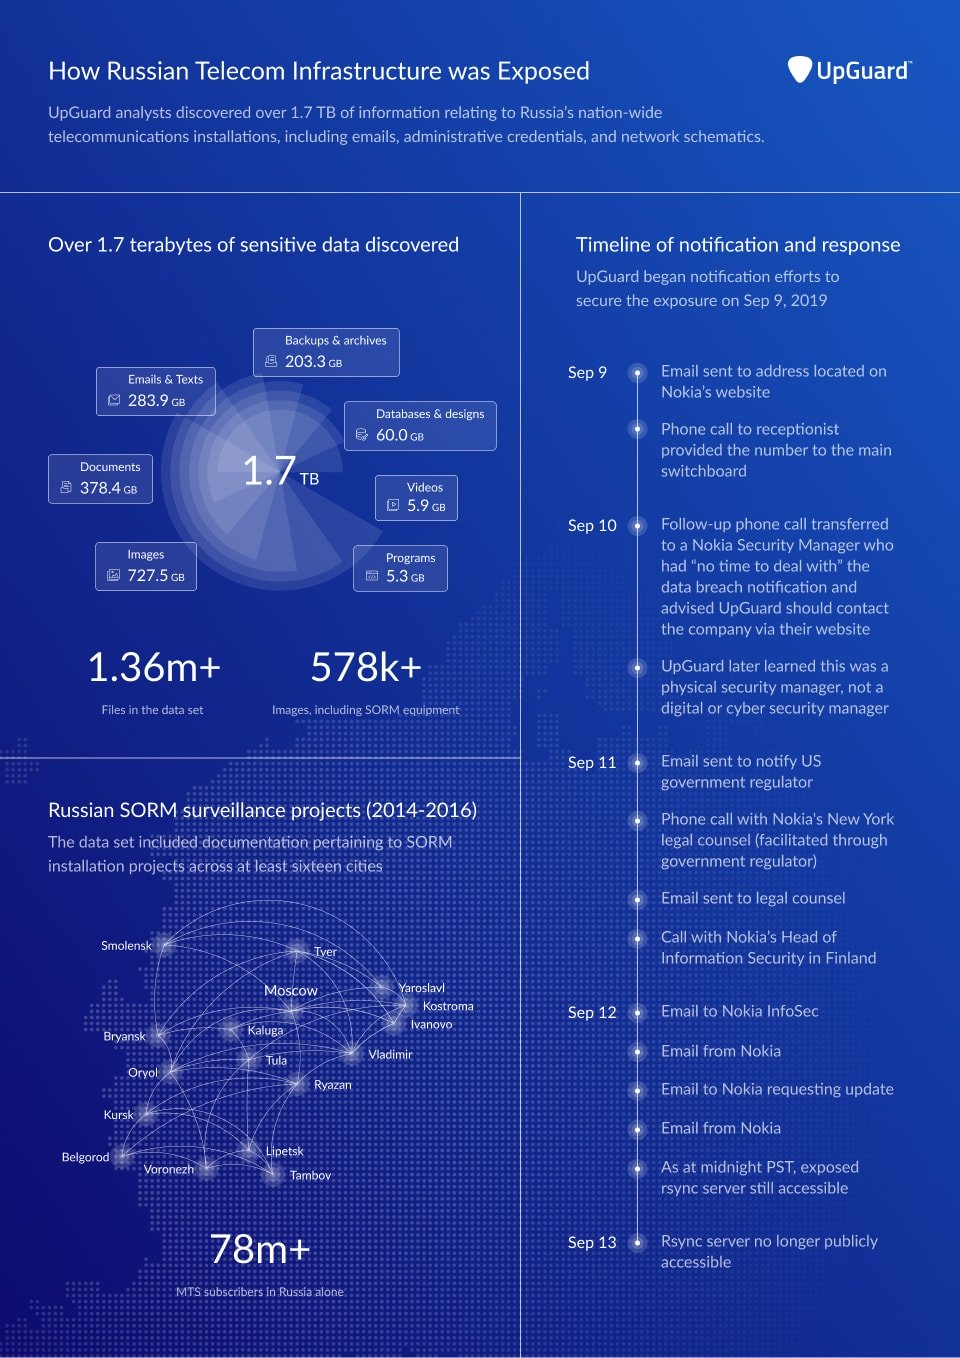 Russian Telecom Infrastructure Infographic